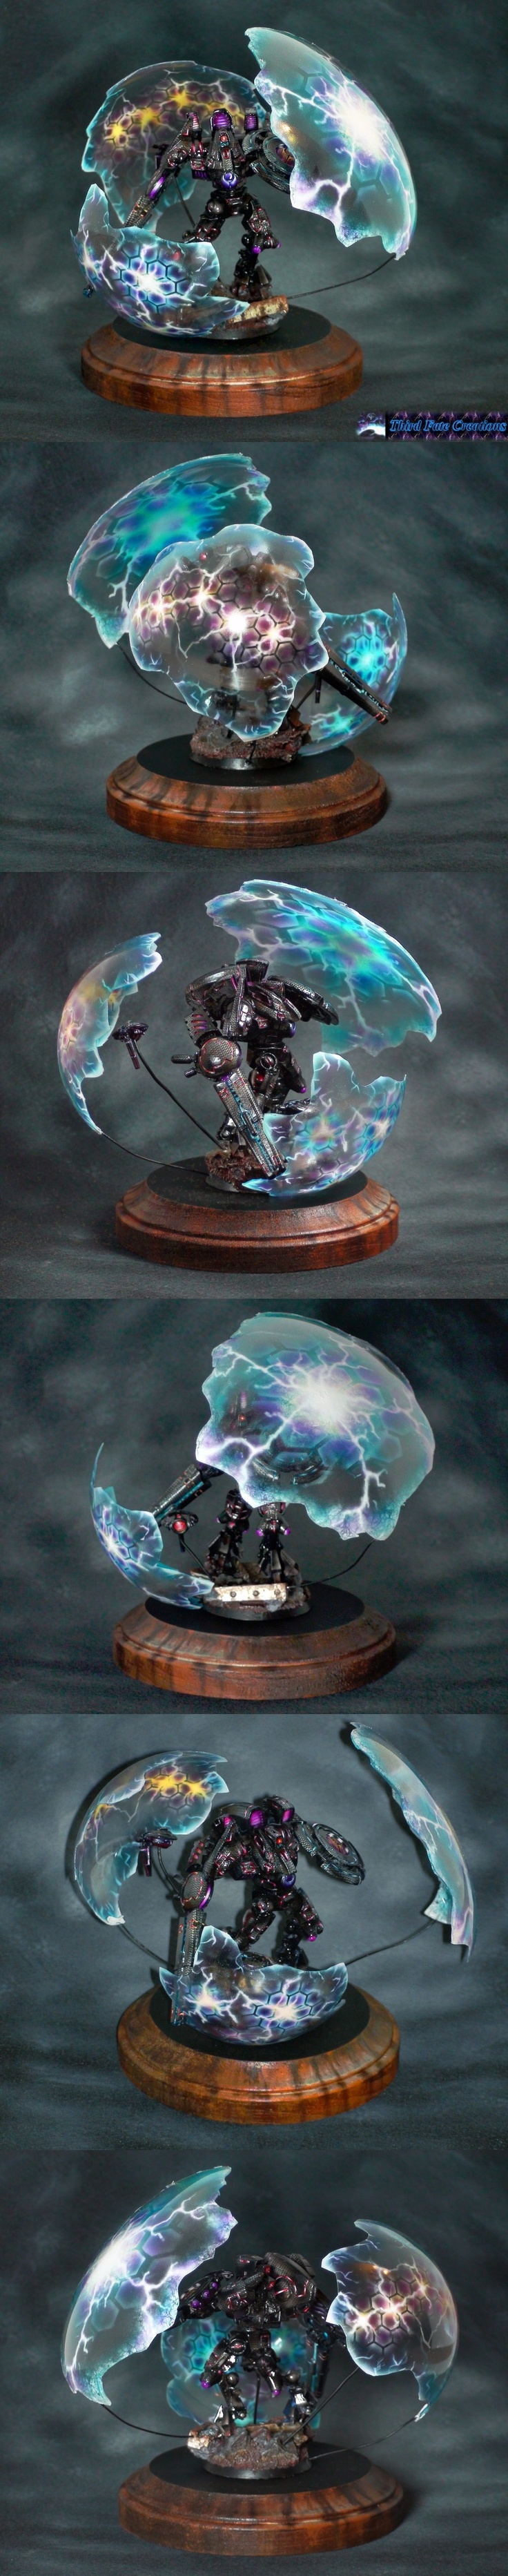 Awesome Tau battle suit with shield generator.